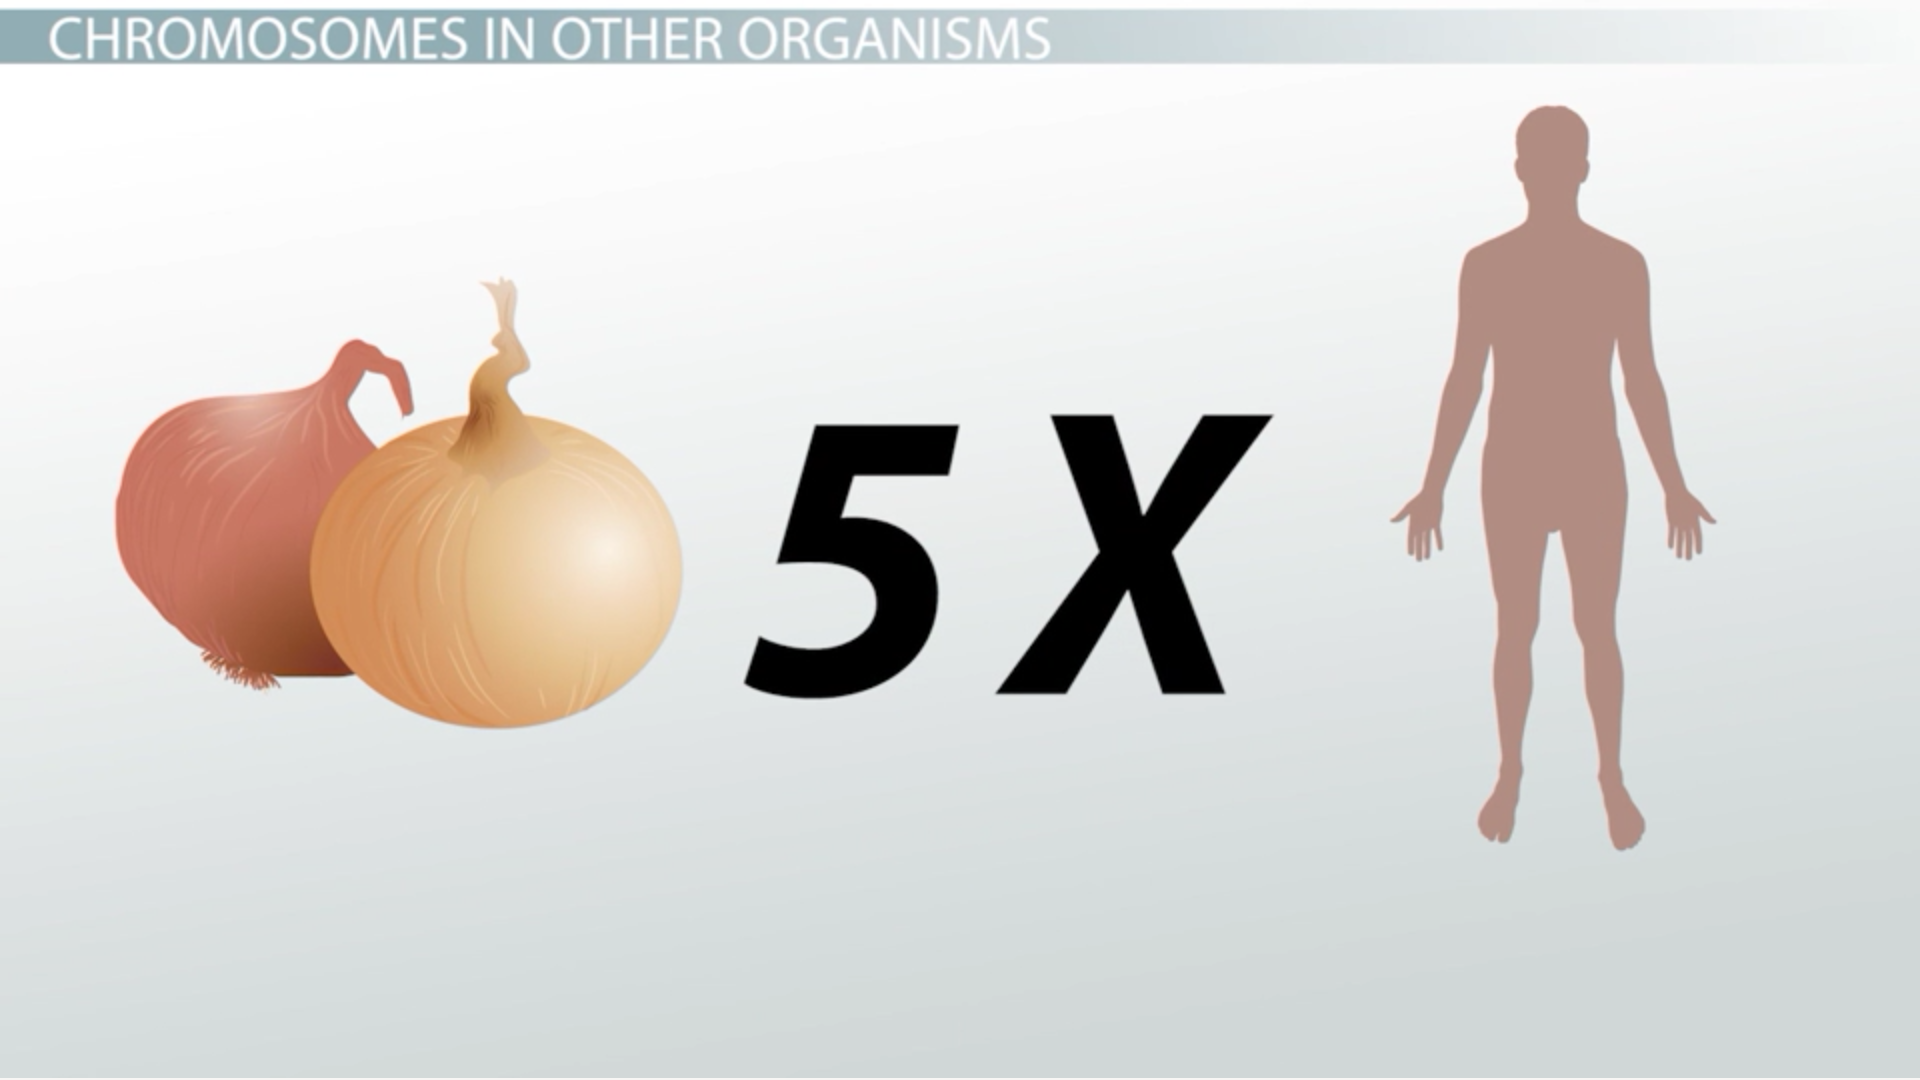 how many chromosomes do onions have